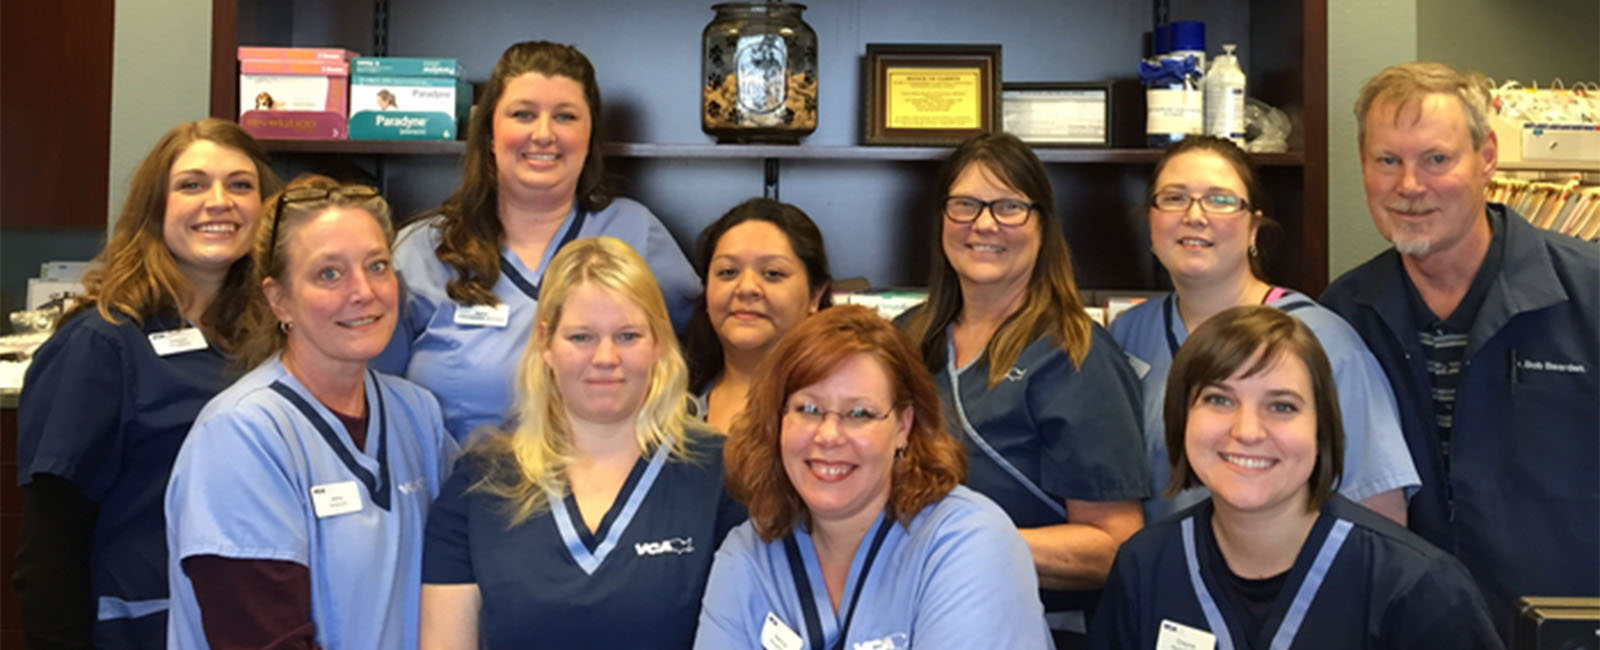 Homepage Team Picture of VCA Mercedes Place Animal Hospital